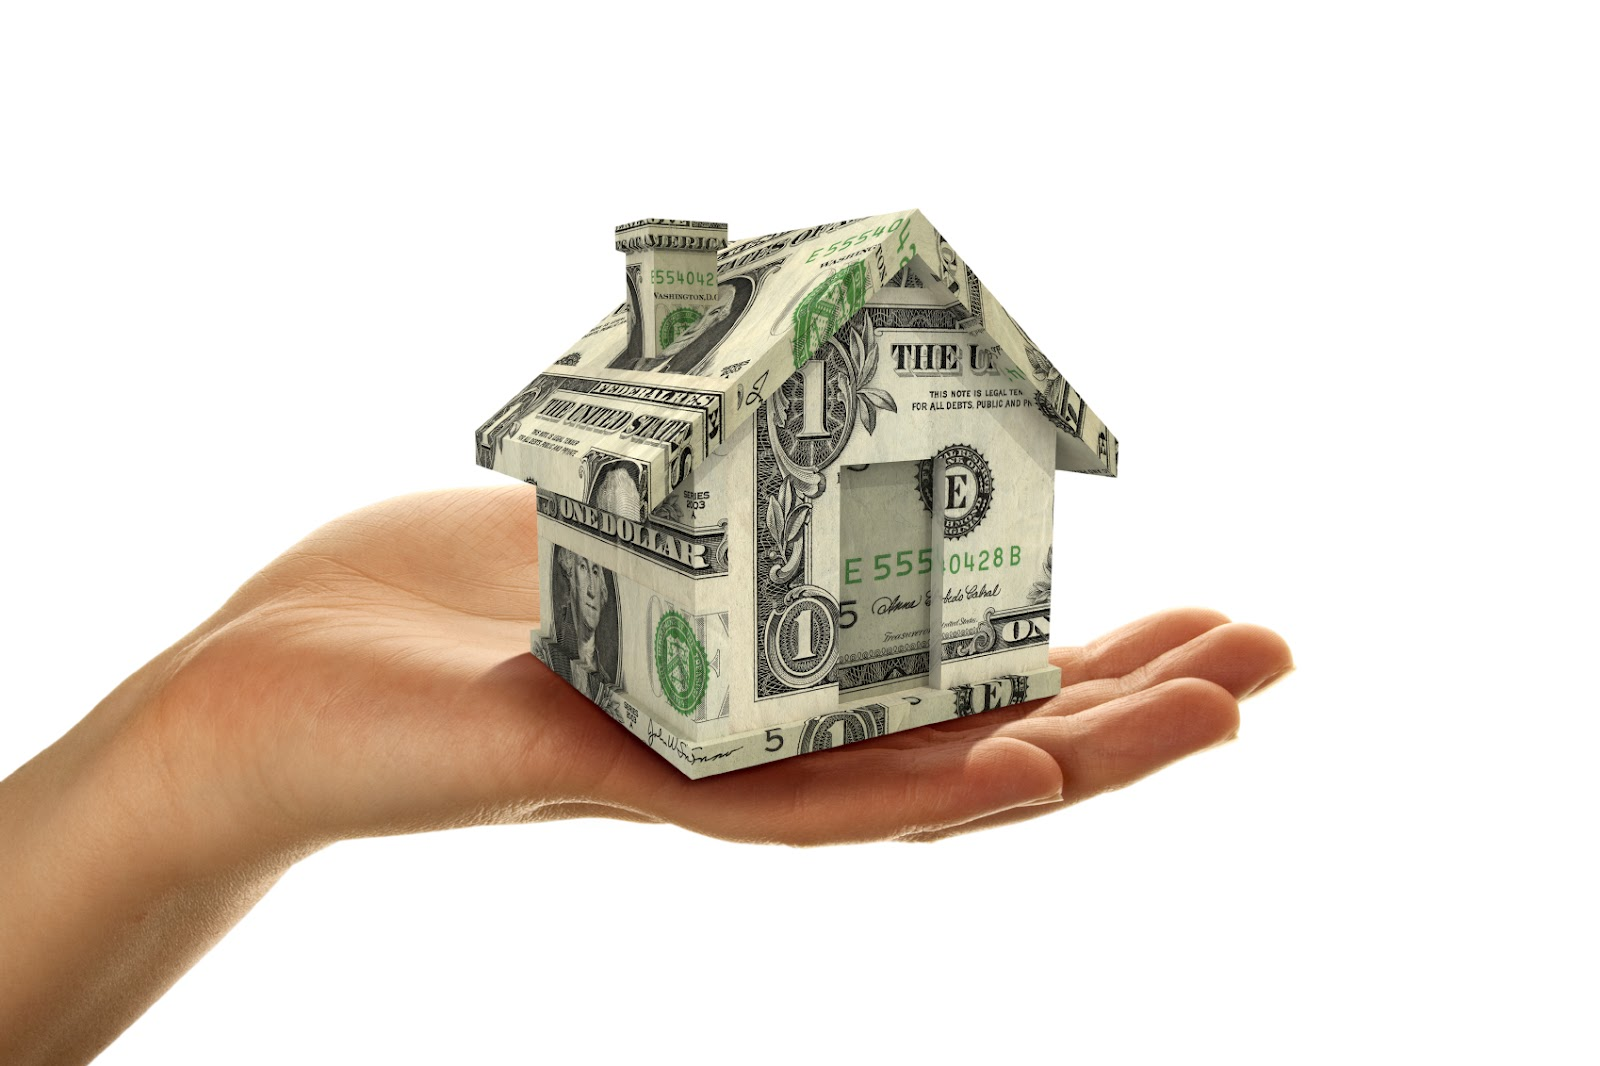 Estate hold home income keep mature money plan woman